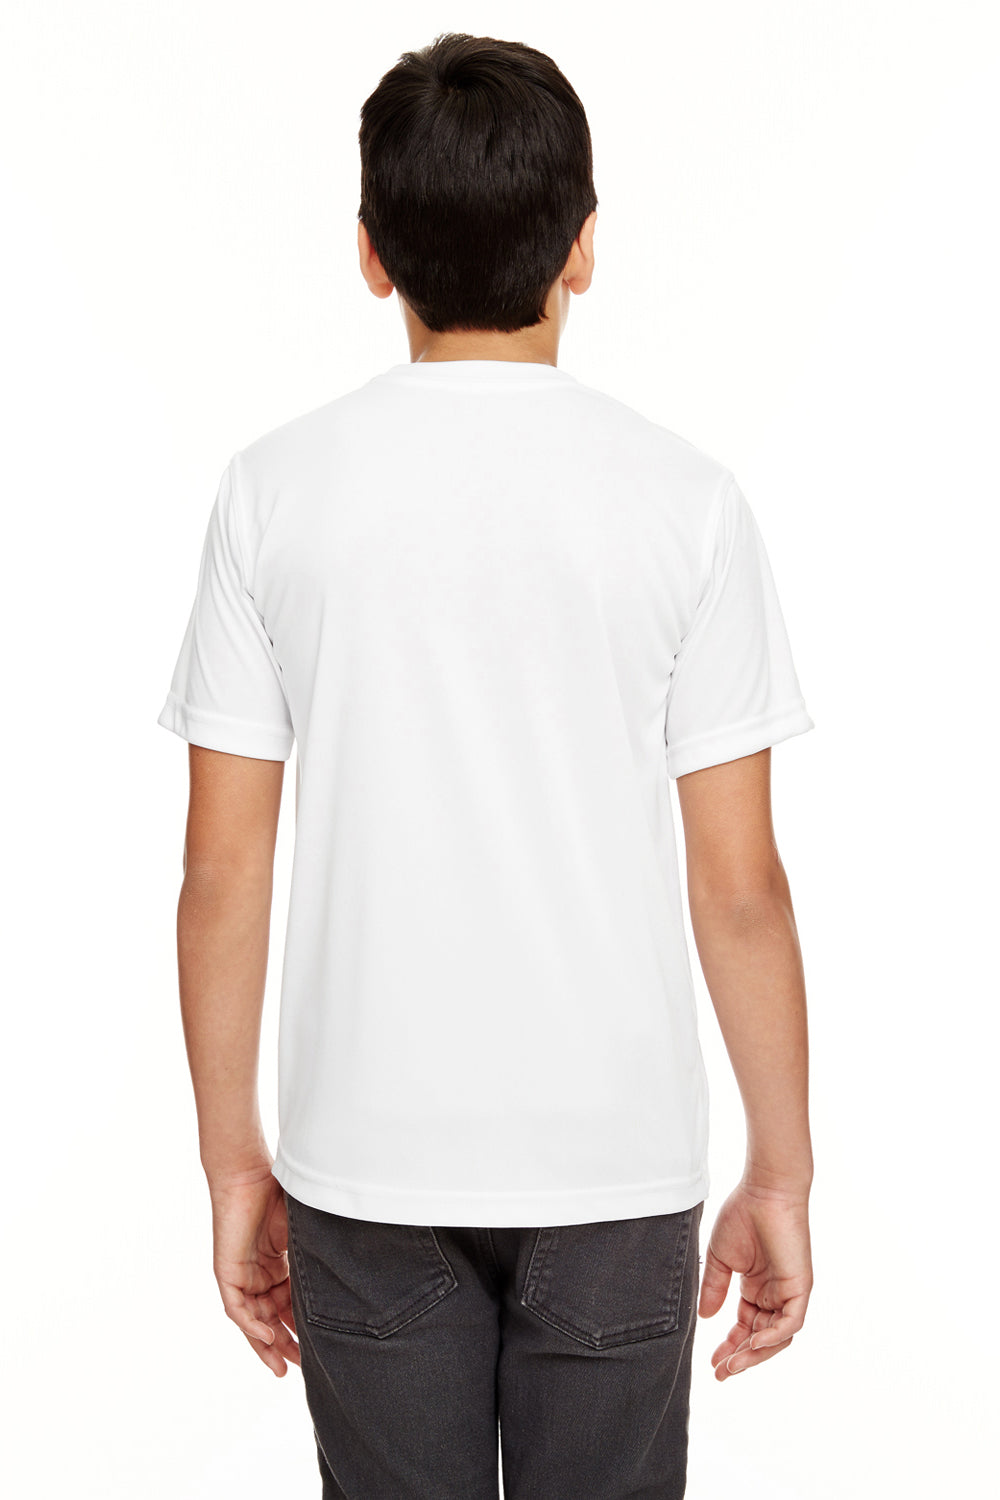 UltraClub 8620Y Youth Cool & Dry Performance Moisture Wicking Short Sleeve Crewneck T-Shirt White Back